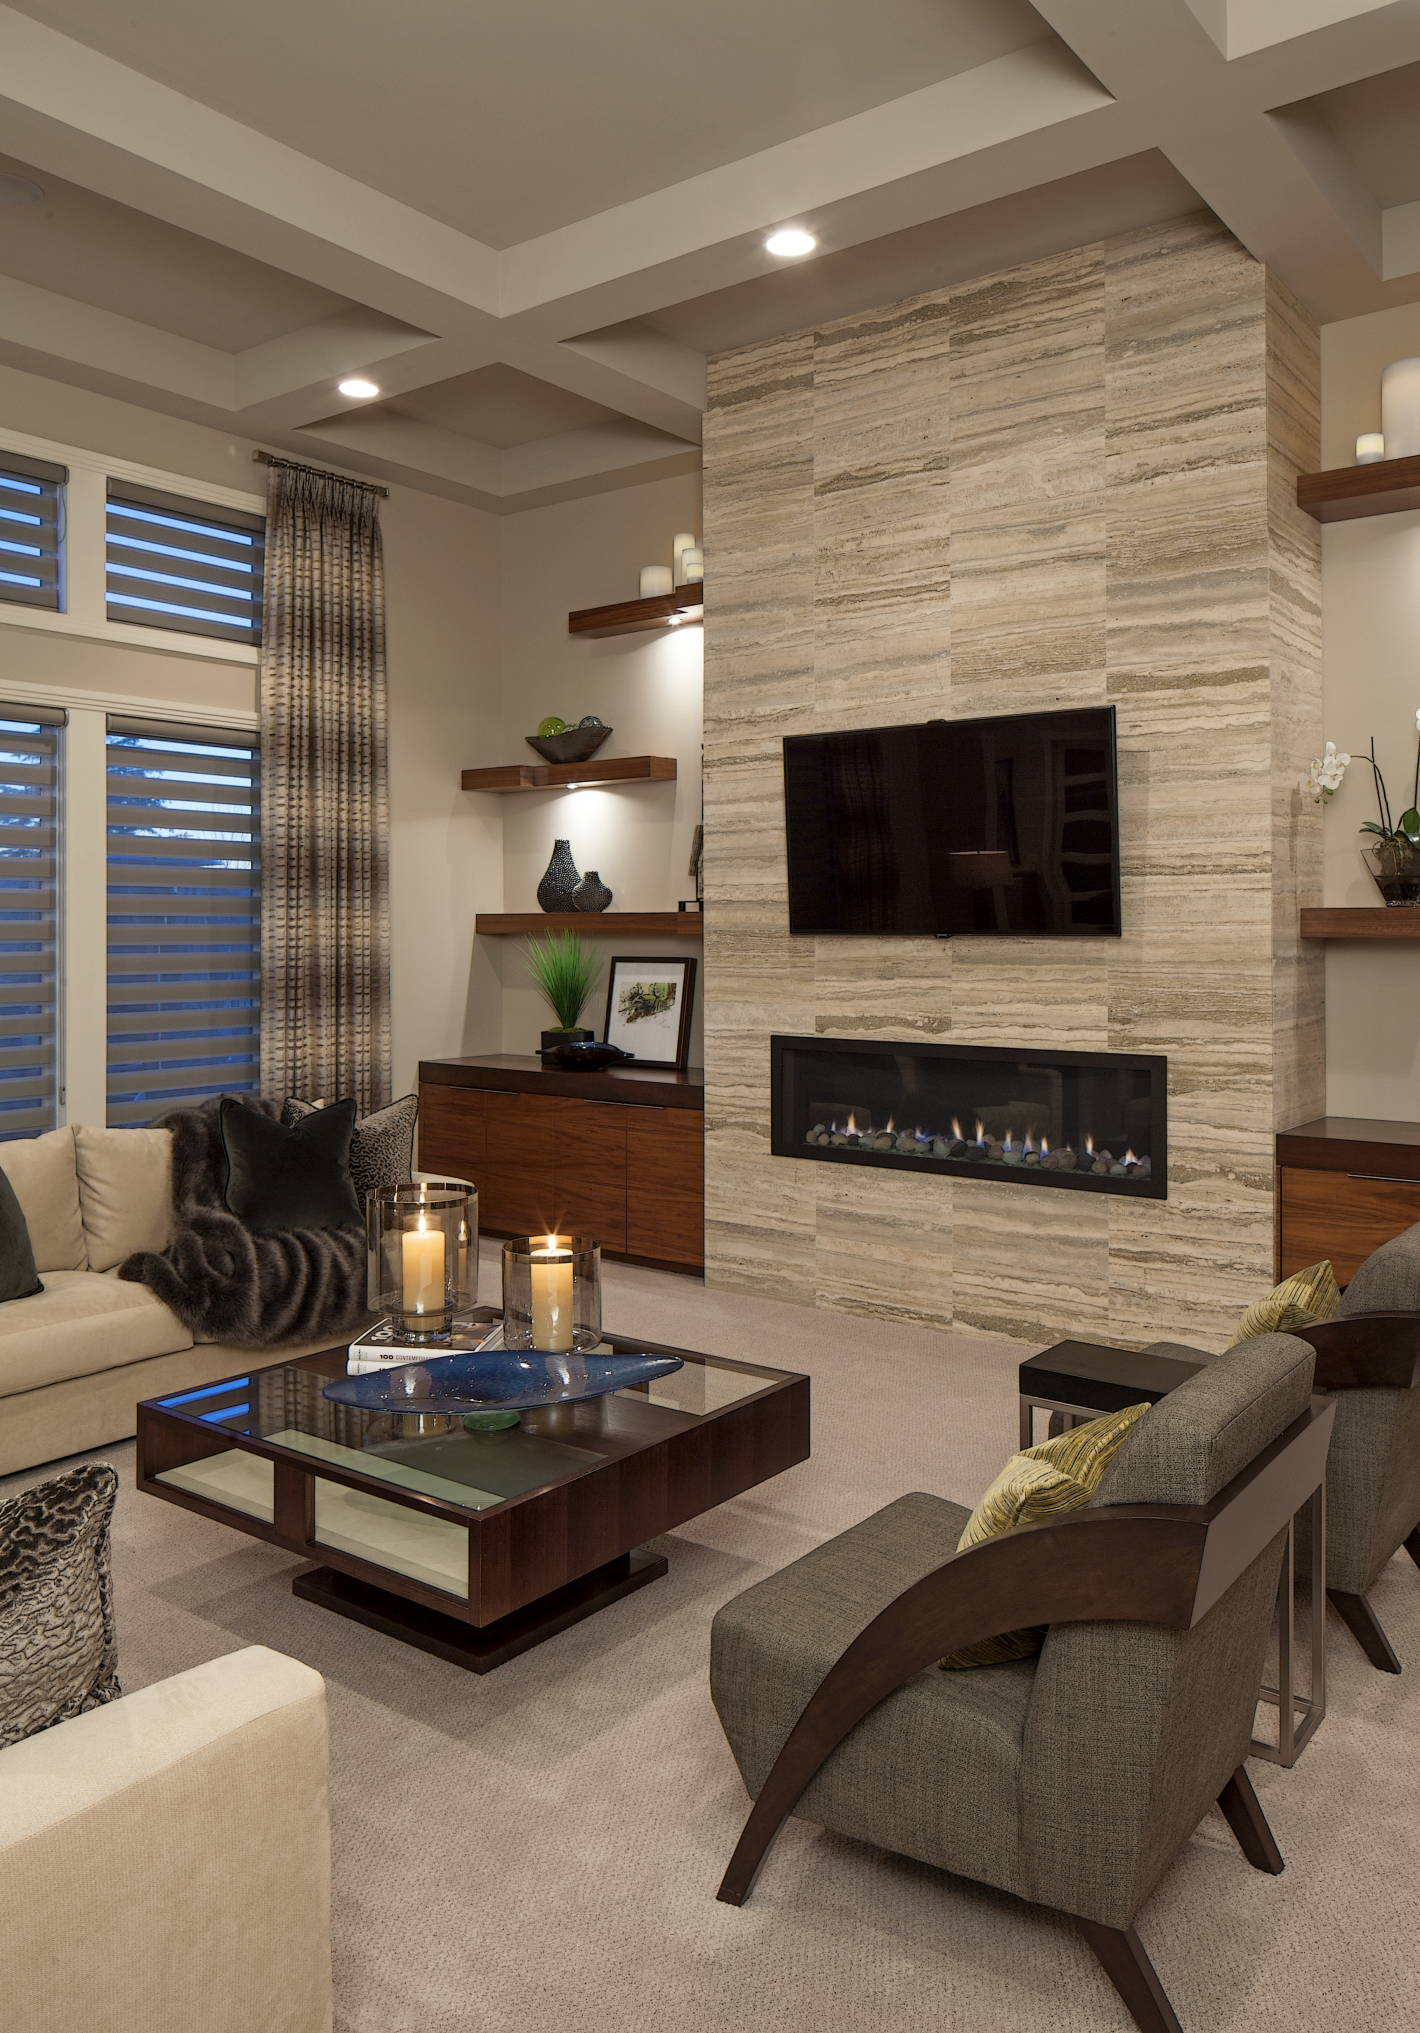 75 Beautiful Living Room With A Wall Mounted Tv Pictures Ideas May 2021 Houzz